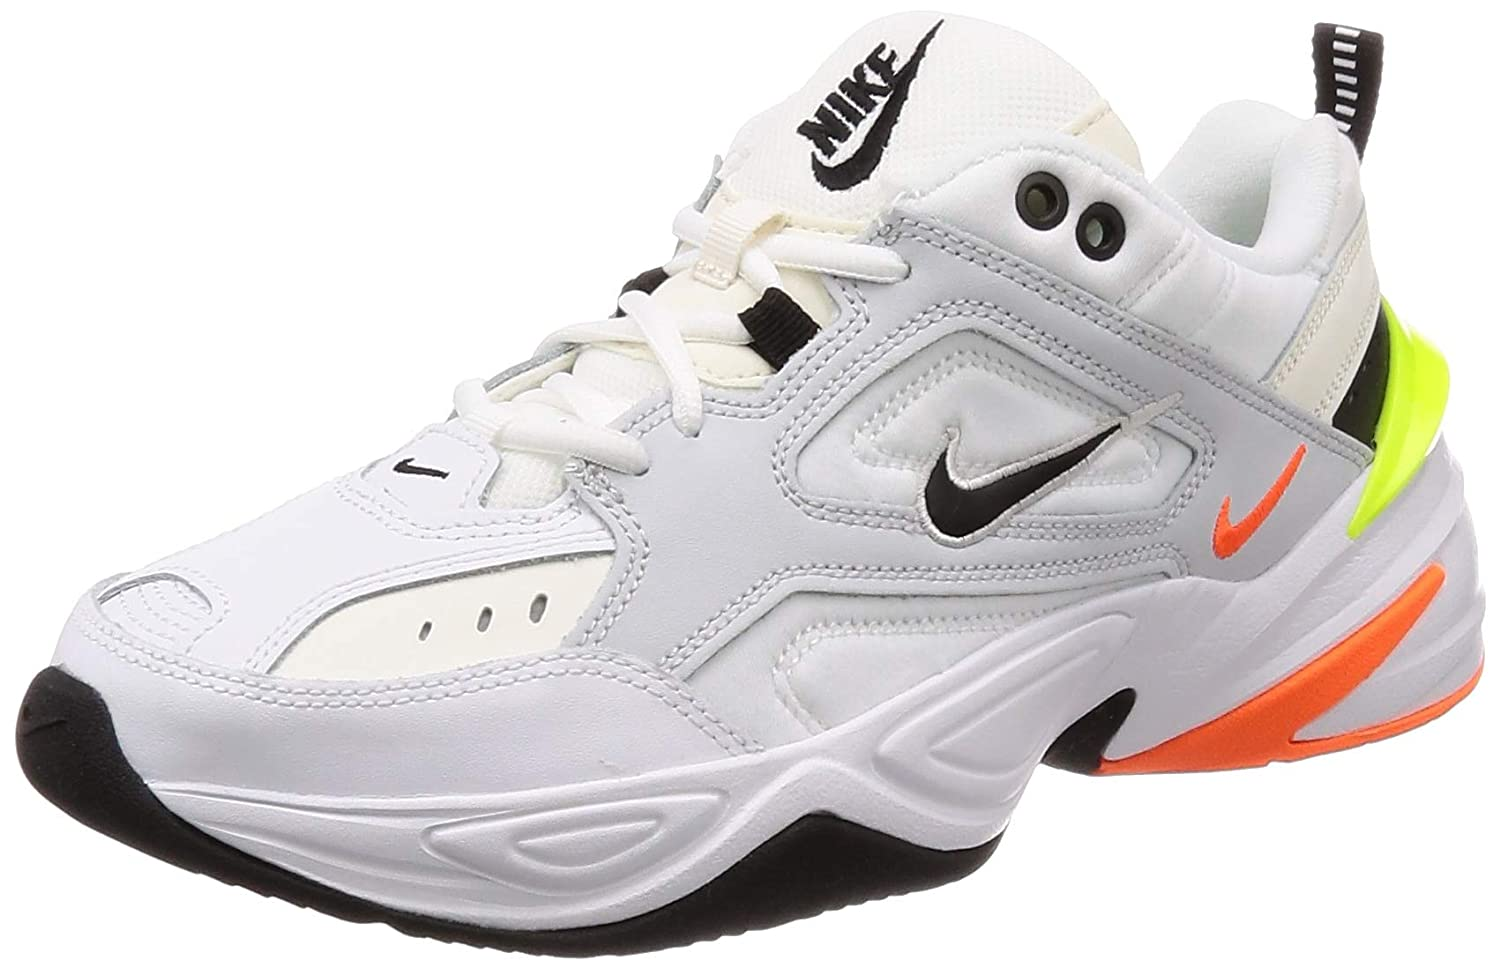 Nike M2k Tekno, Scarpe da Fitness Uomo: Amazon.it: Scarpe e ...